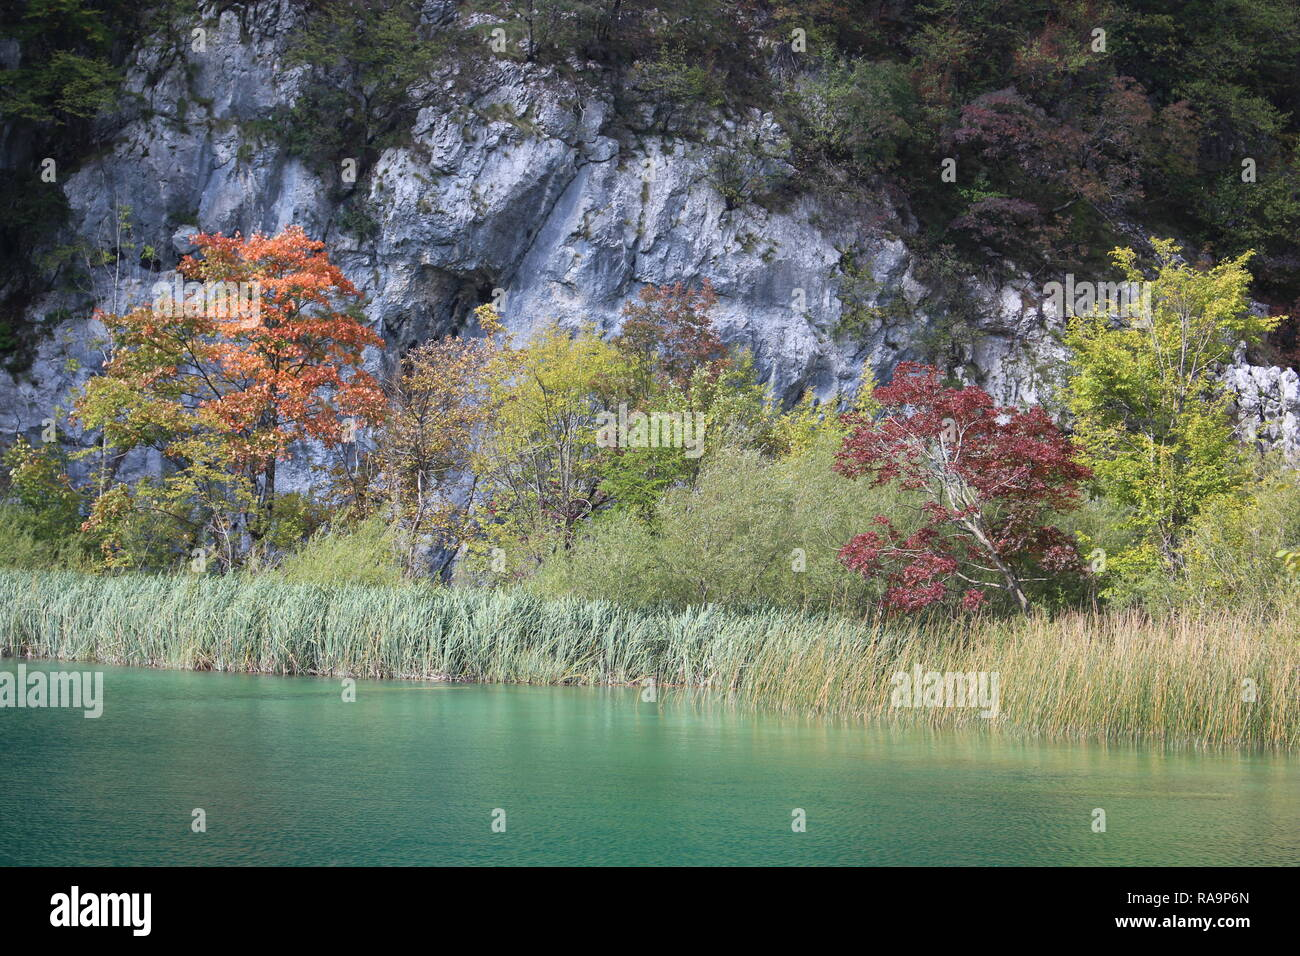 Plitvice Lakes National Park trees in the spring - Stock Image